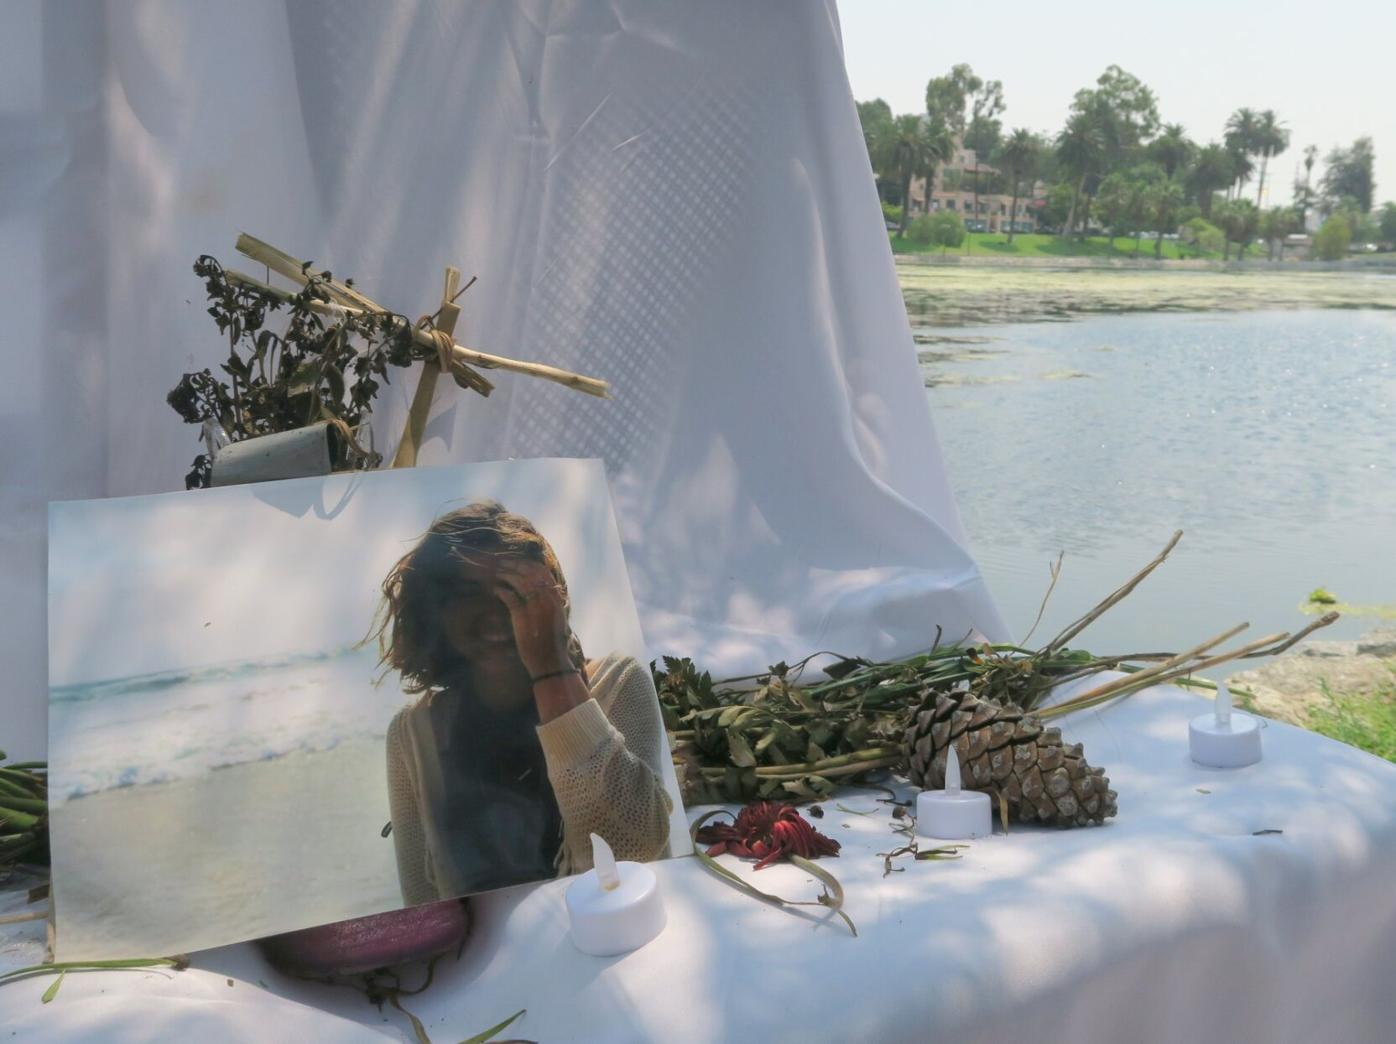 Brianna Moore memorial at echo park lake photo by jesus sanchez 8-11-2020 12-53-26 PM.JPG